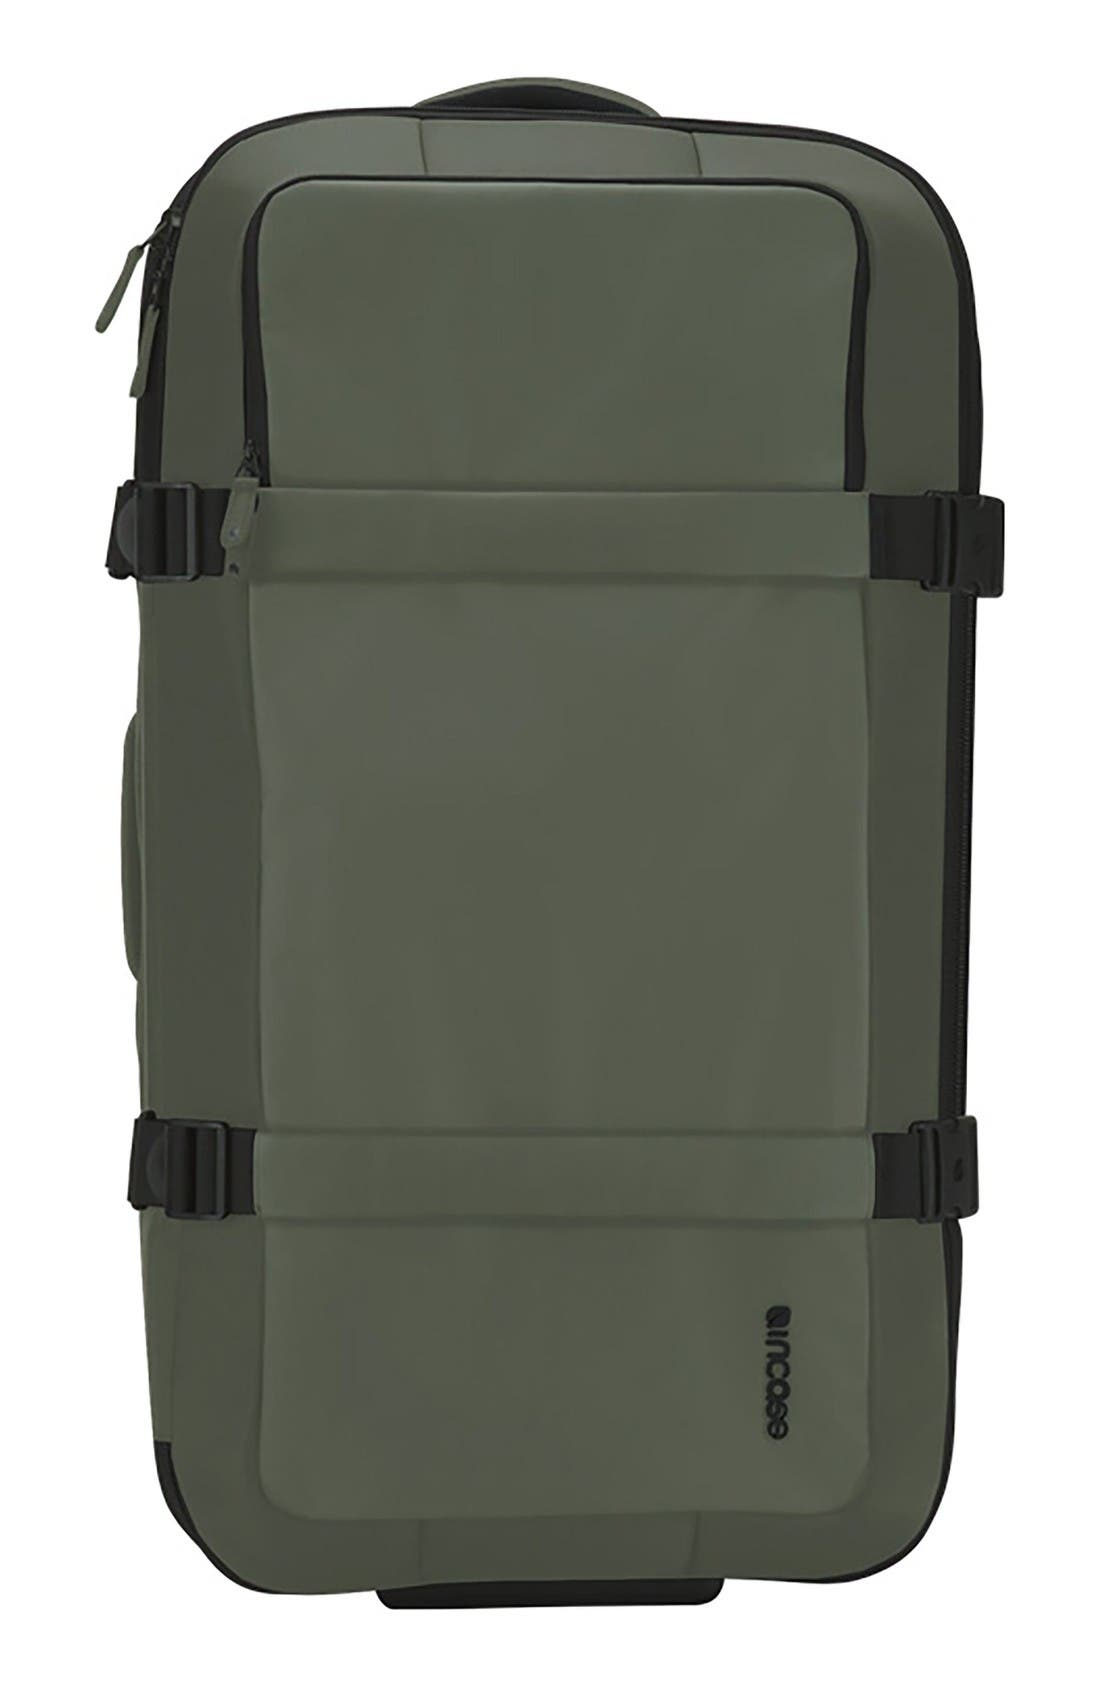 Incase Designs TRACTO 30 Inch Wheeled Duffel Bag